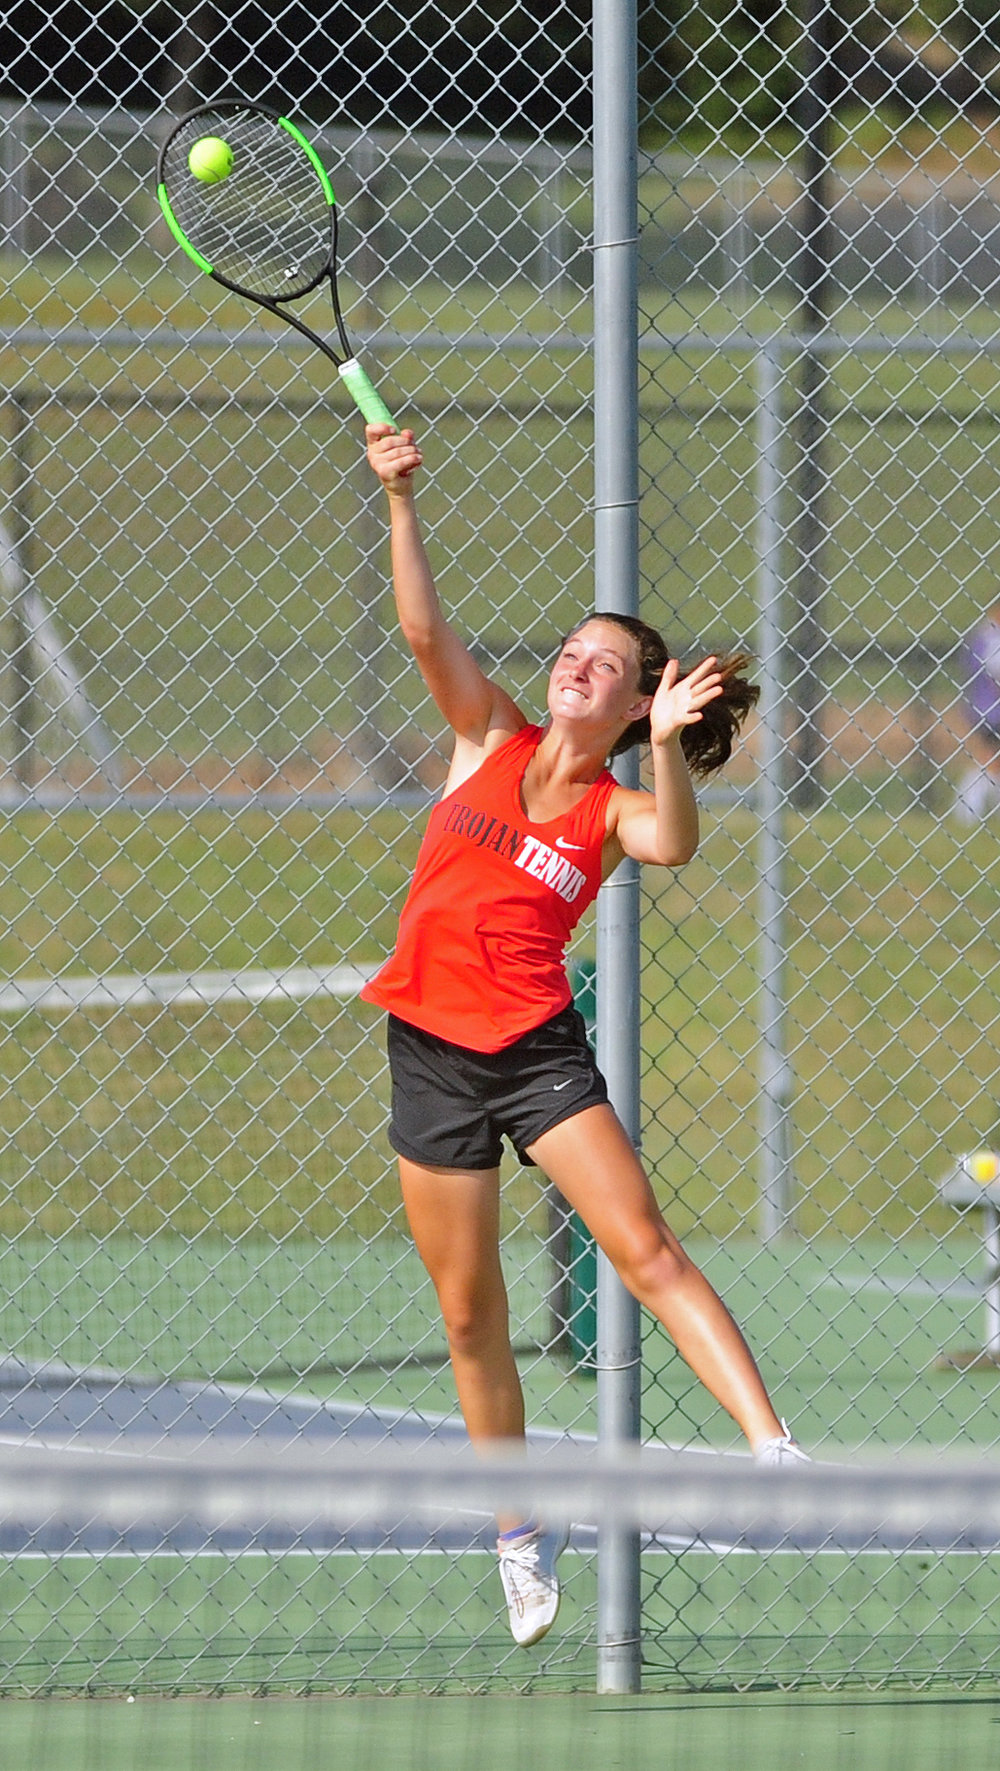 NICK INGRAM/Citizen photo Park Hill freshman Maisie Markowitz reaches up to hit a serve in the dual with Park Hill South on Thursday, Sept. 14.